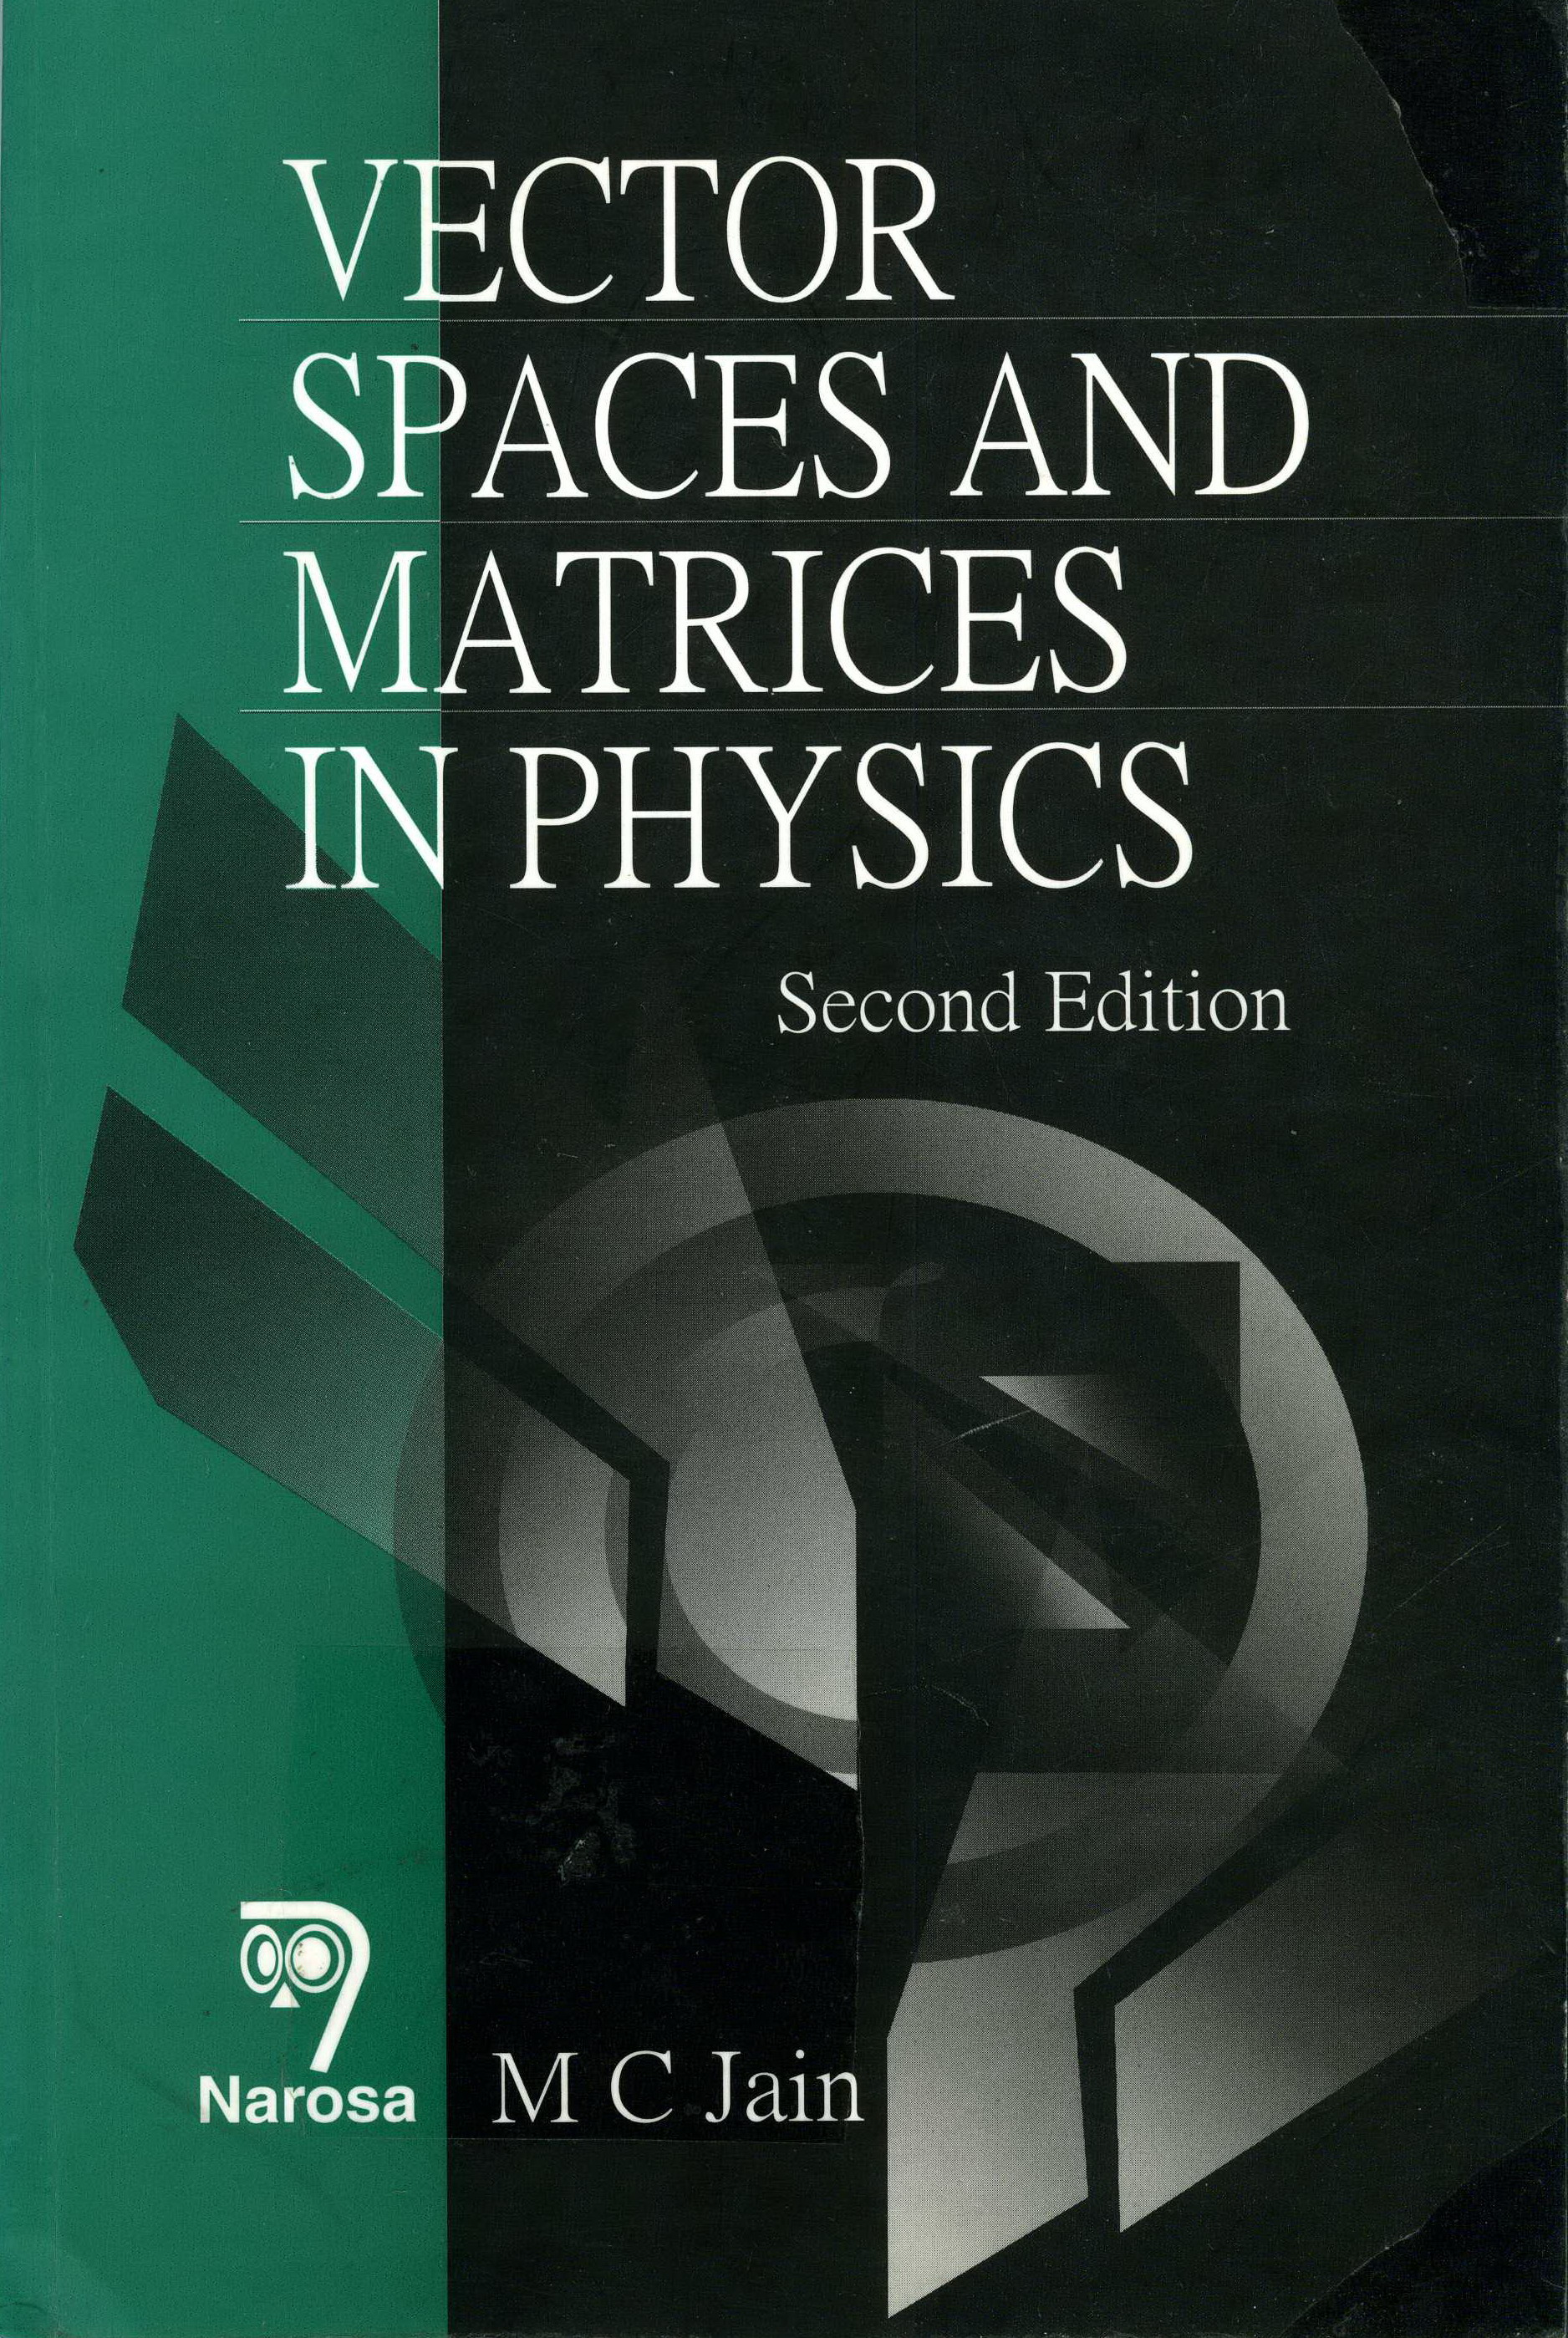 Vector spaces and matrices in physics